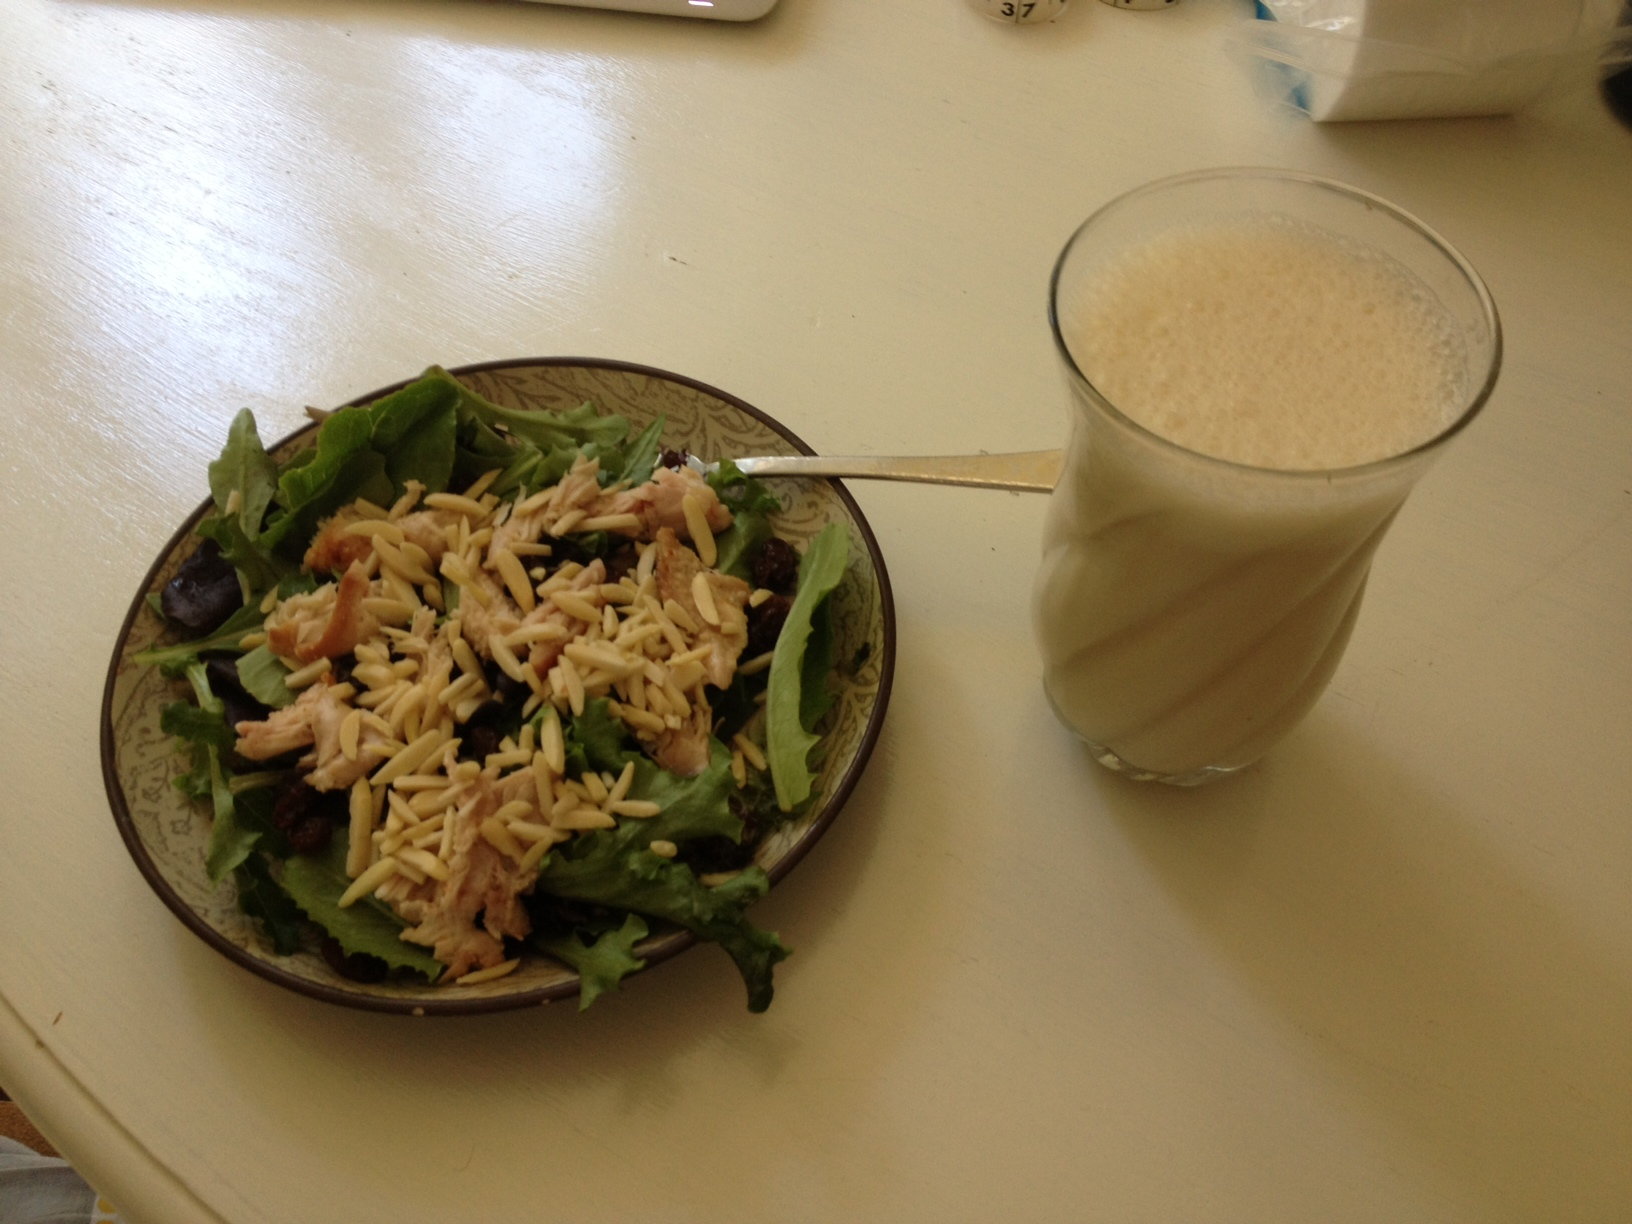 Chicken/almonds/raisins salad, plus an almond milk protein shake